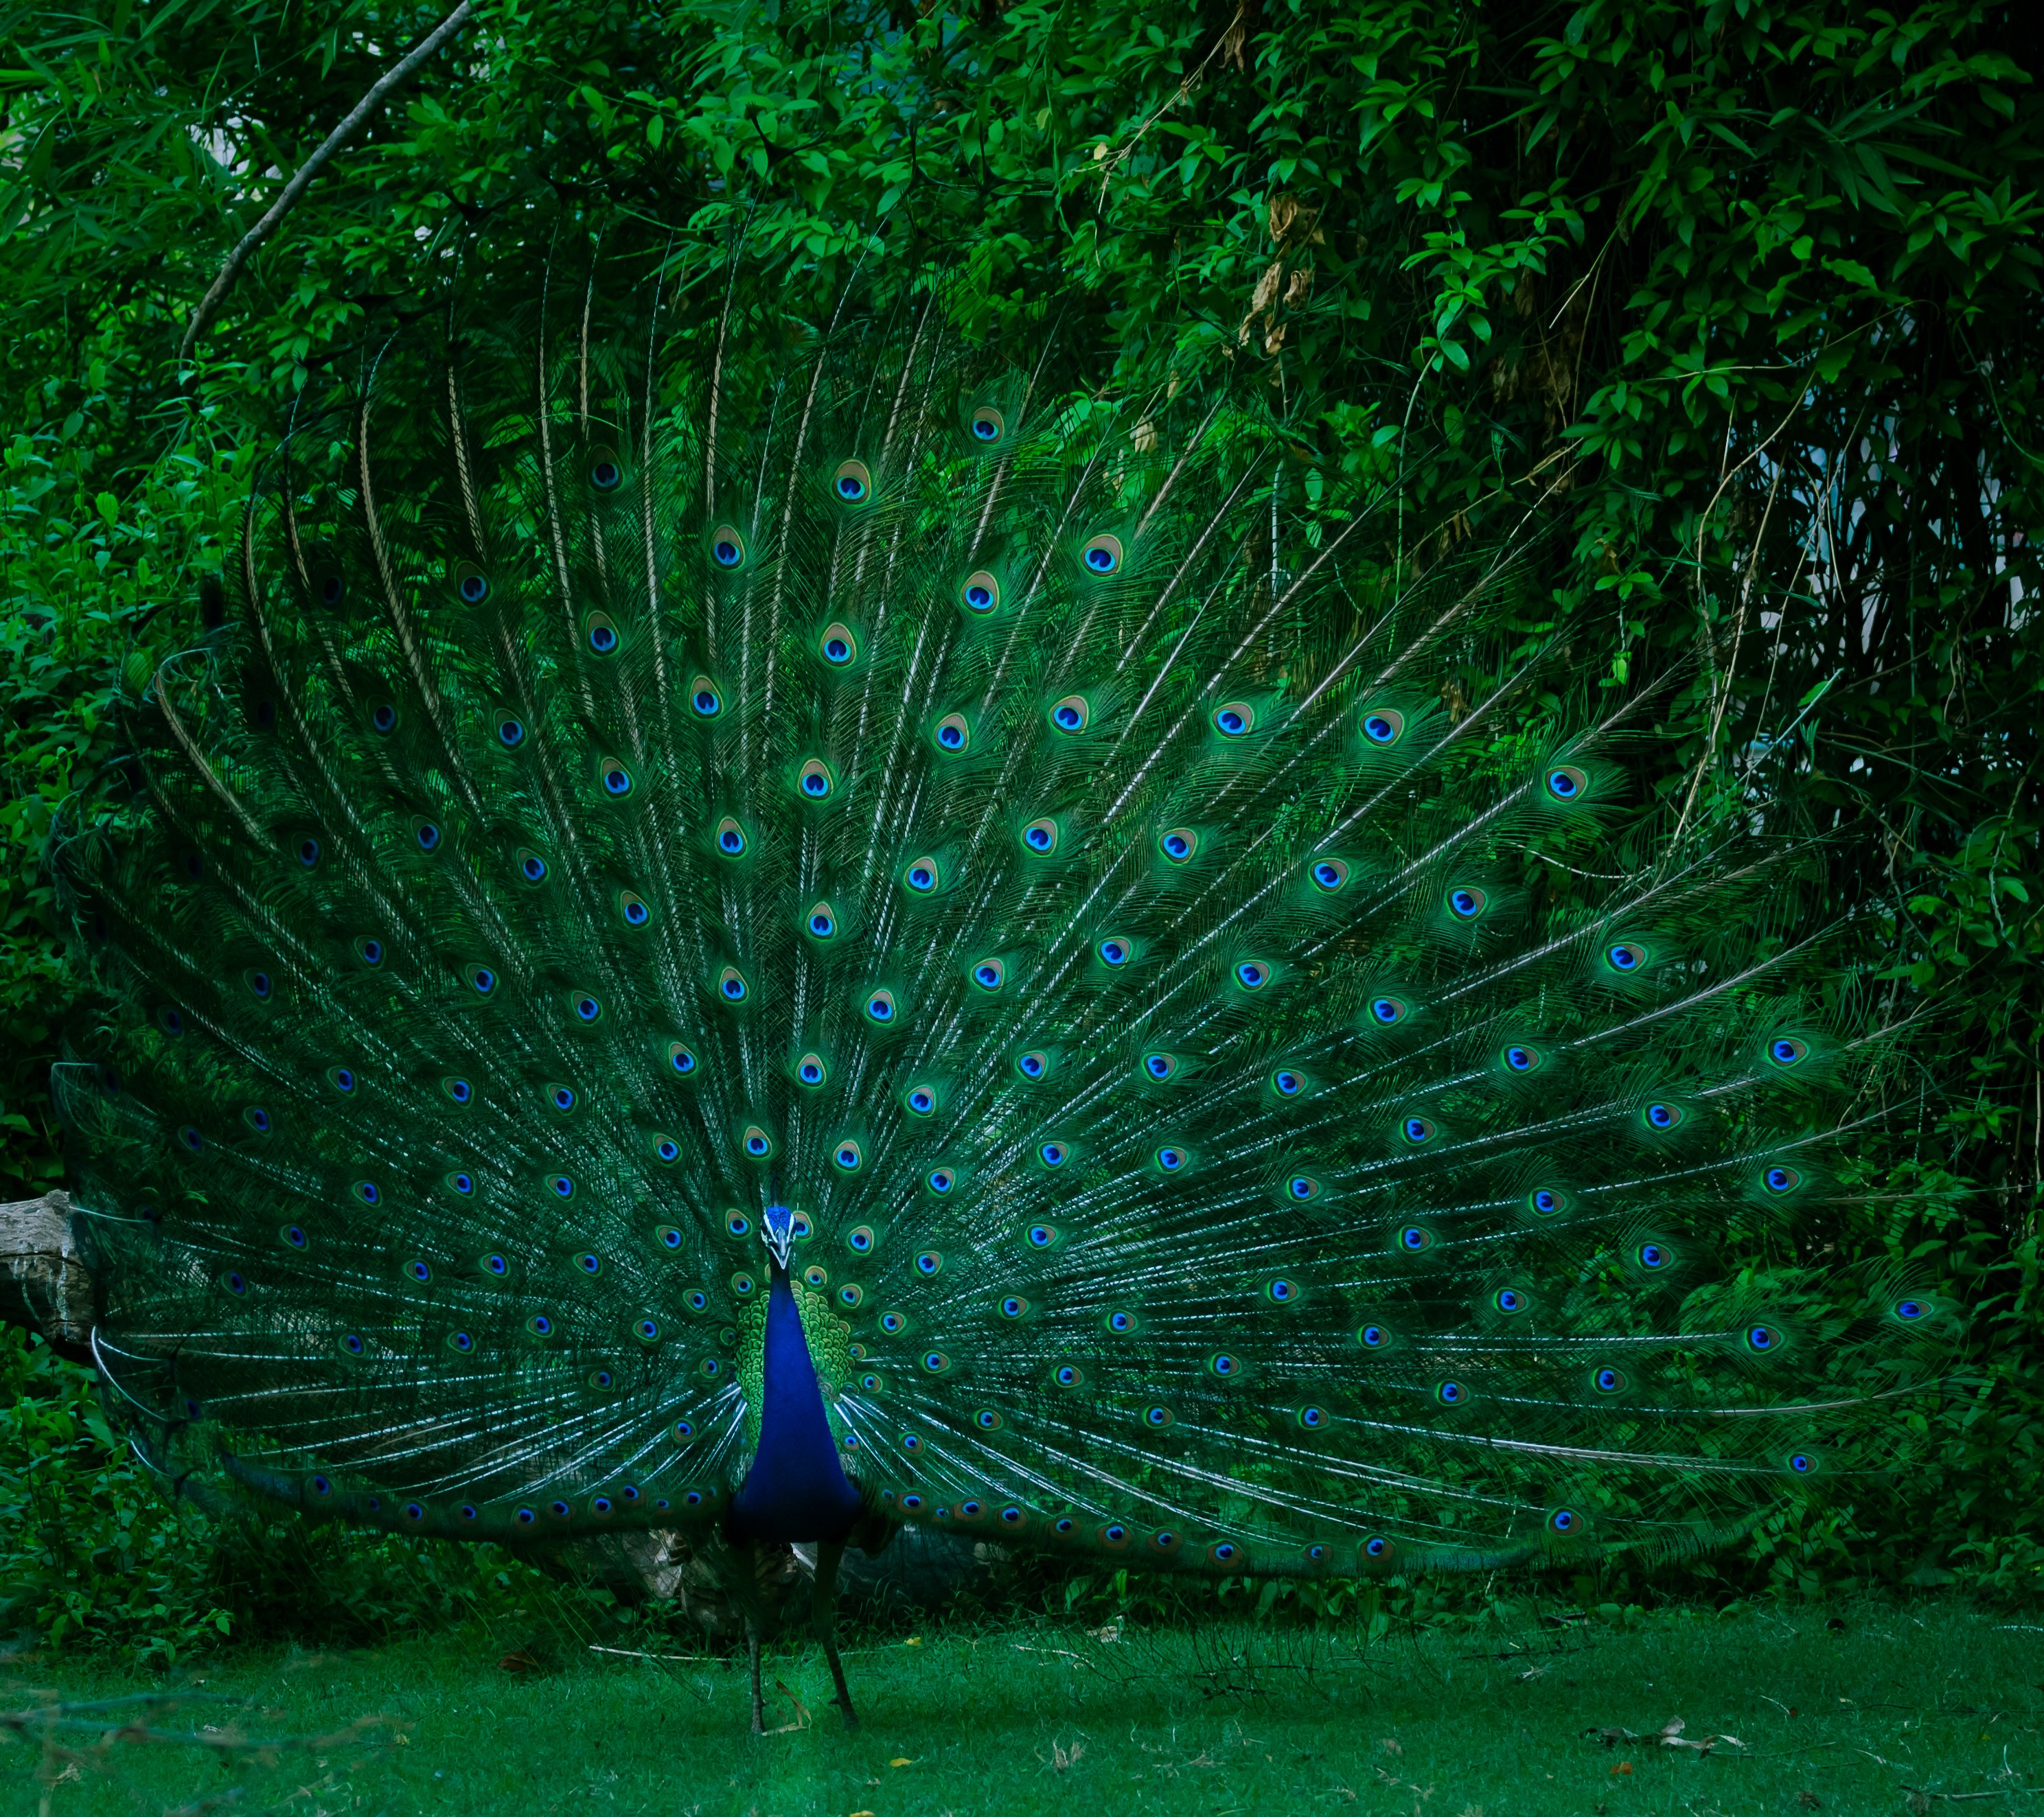 A beautiful peacock with it's tail feathers sprayed out.